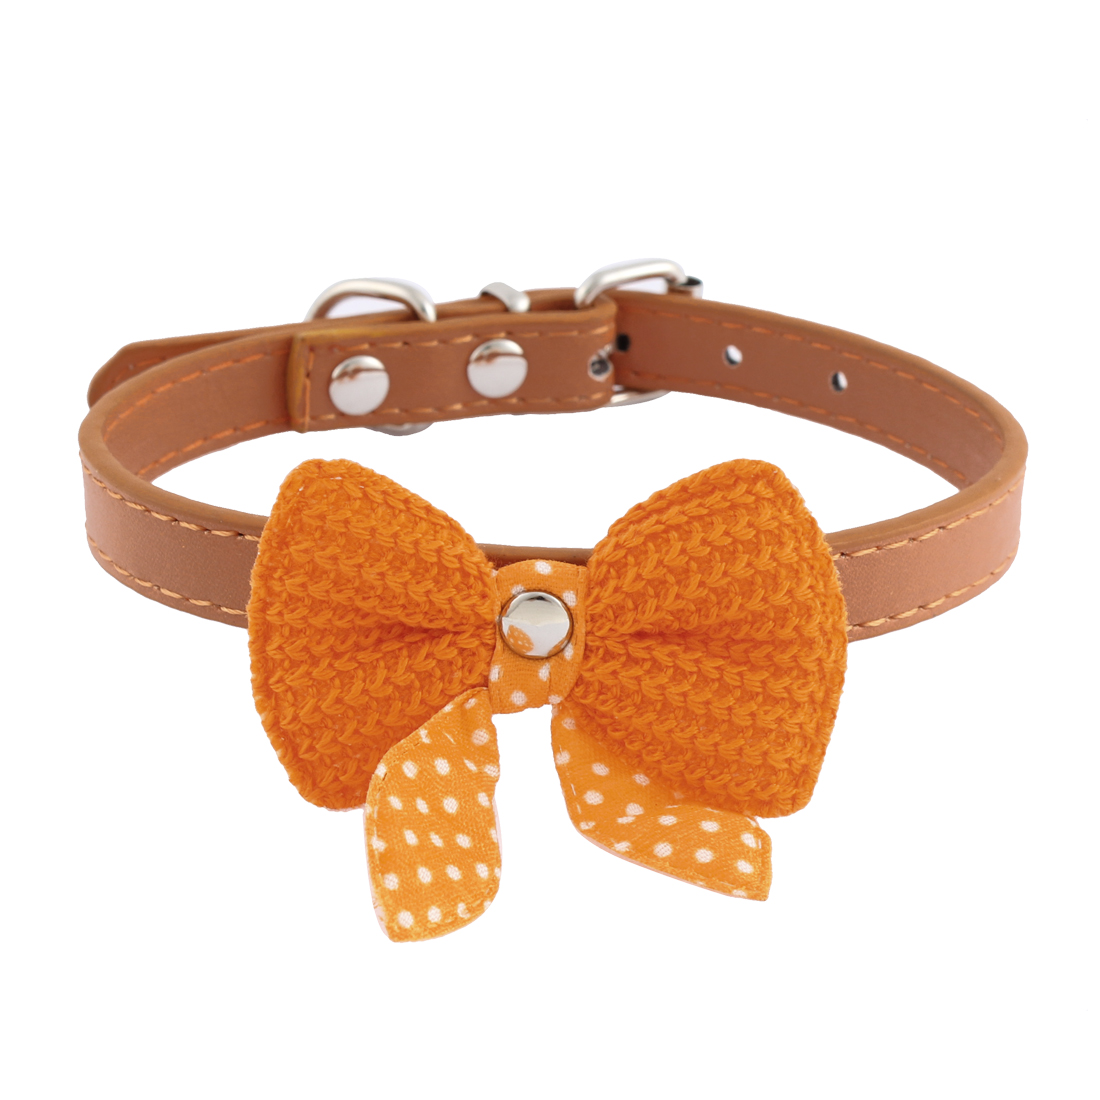 Single Pin Buckle Bow Bowknot Detail Pet Dog Kitty Collar 27-33cm Orange